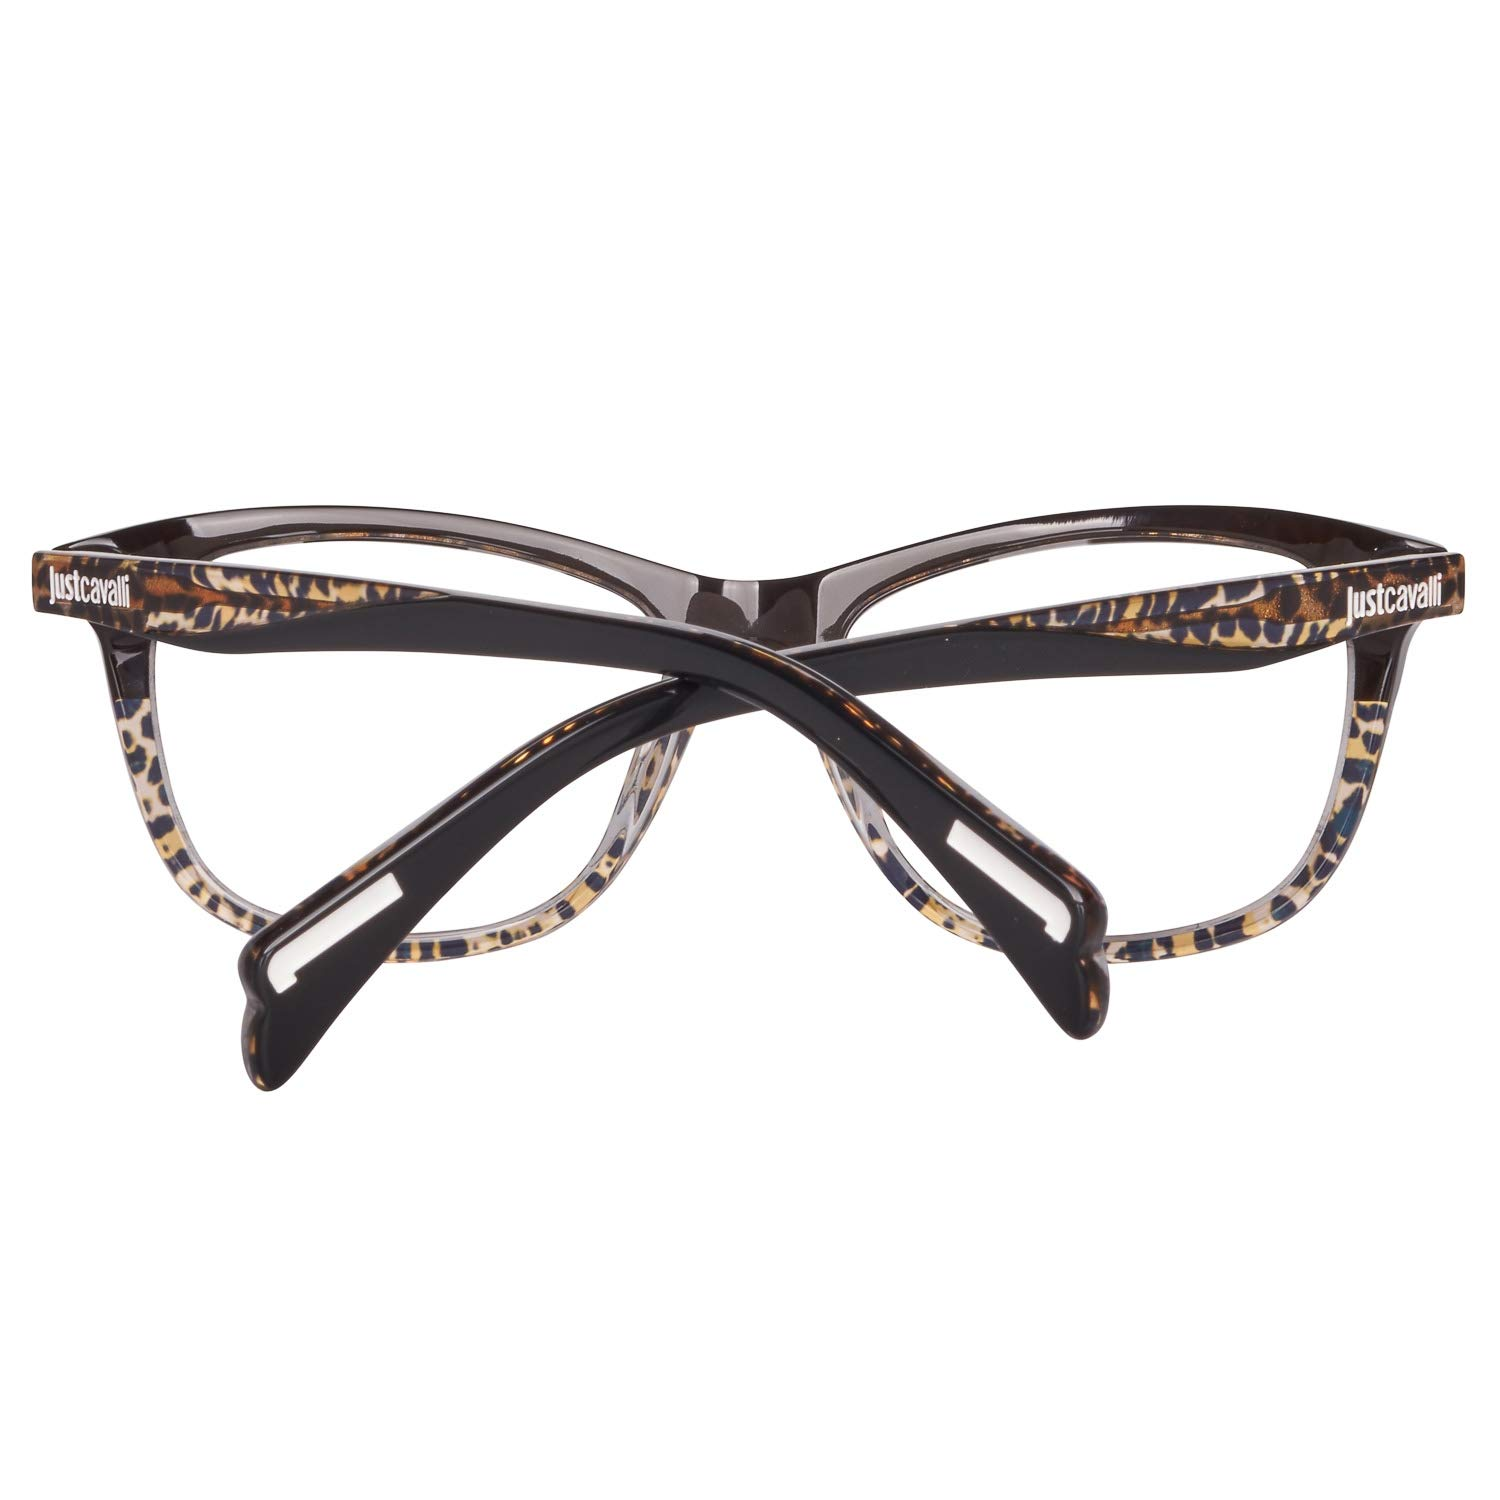 60c4f297702 Amazon.com  Eyeglasses Just Cavalli JC 749 JC 0749 047 light brown other   Clothing